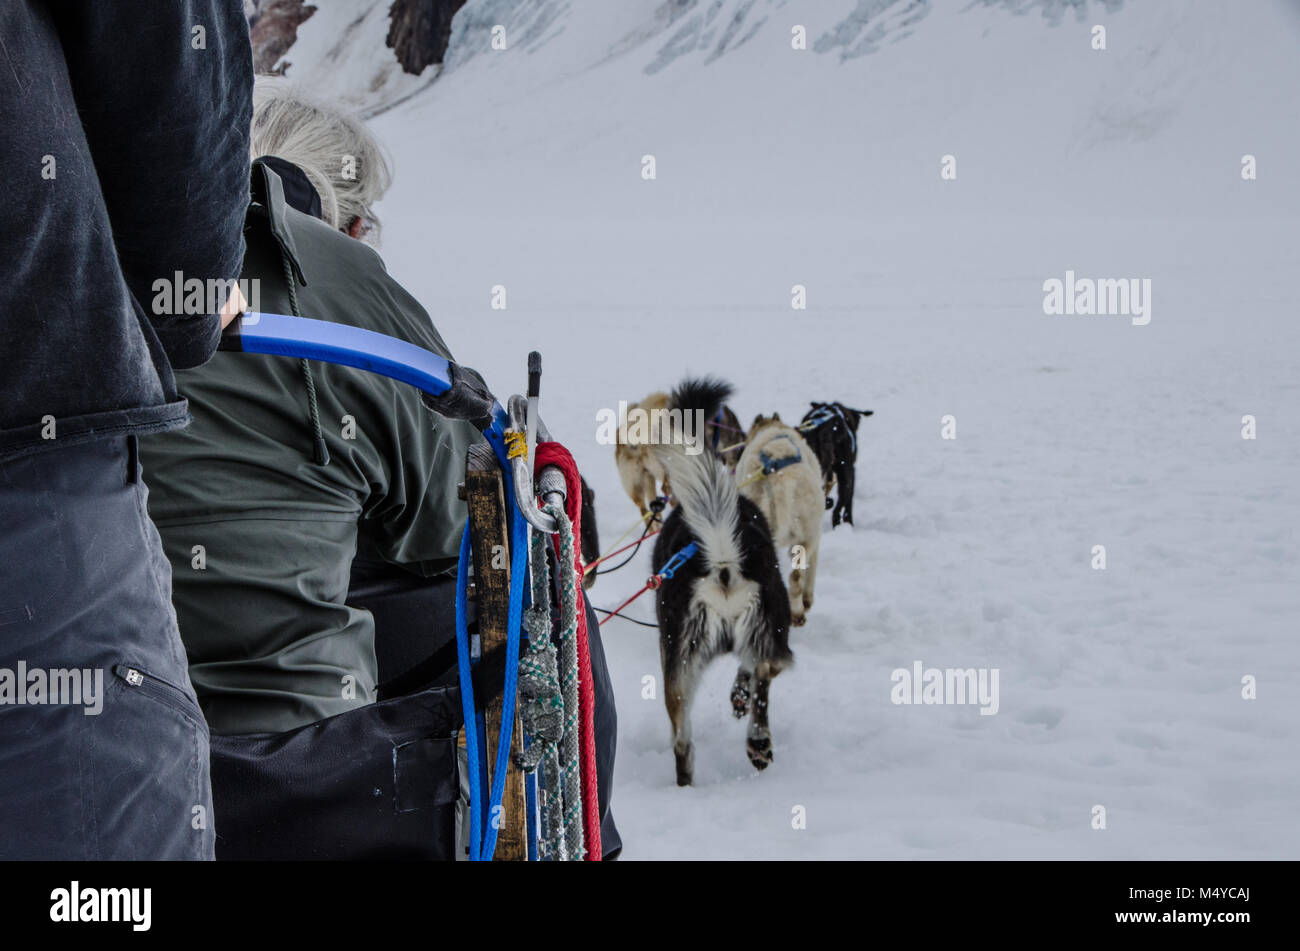 Female retiree experiences the fun and excitement of dog sledding. Tourist rides on dog sled with musher in winter - Stock Image